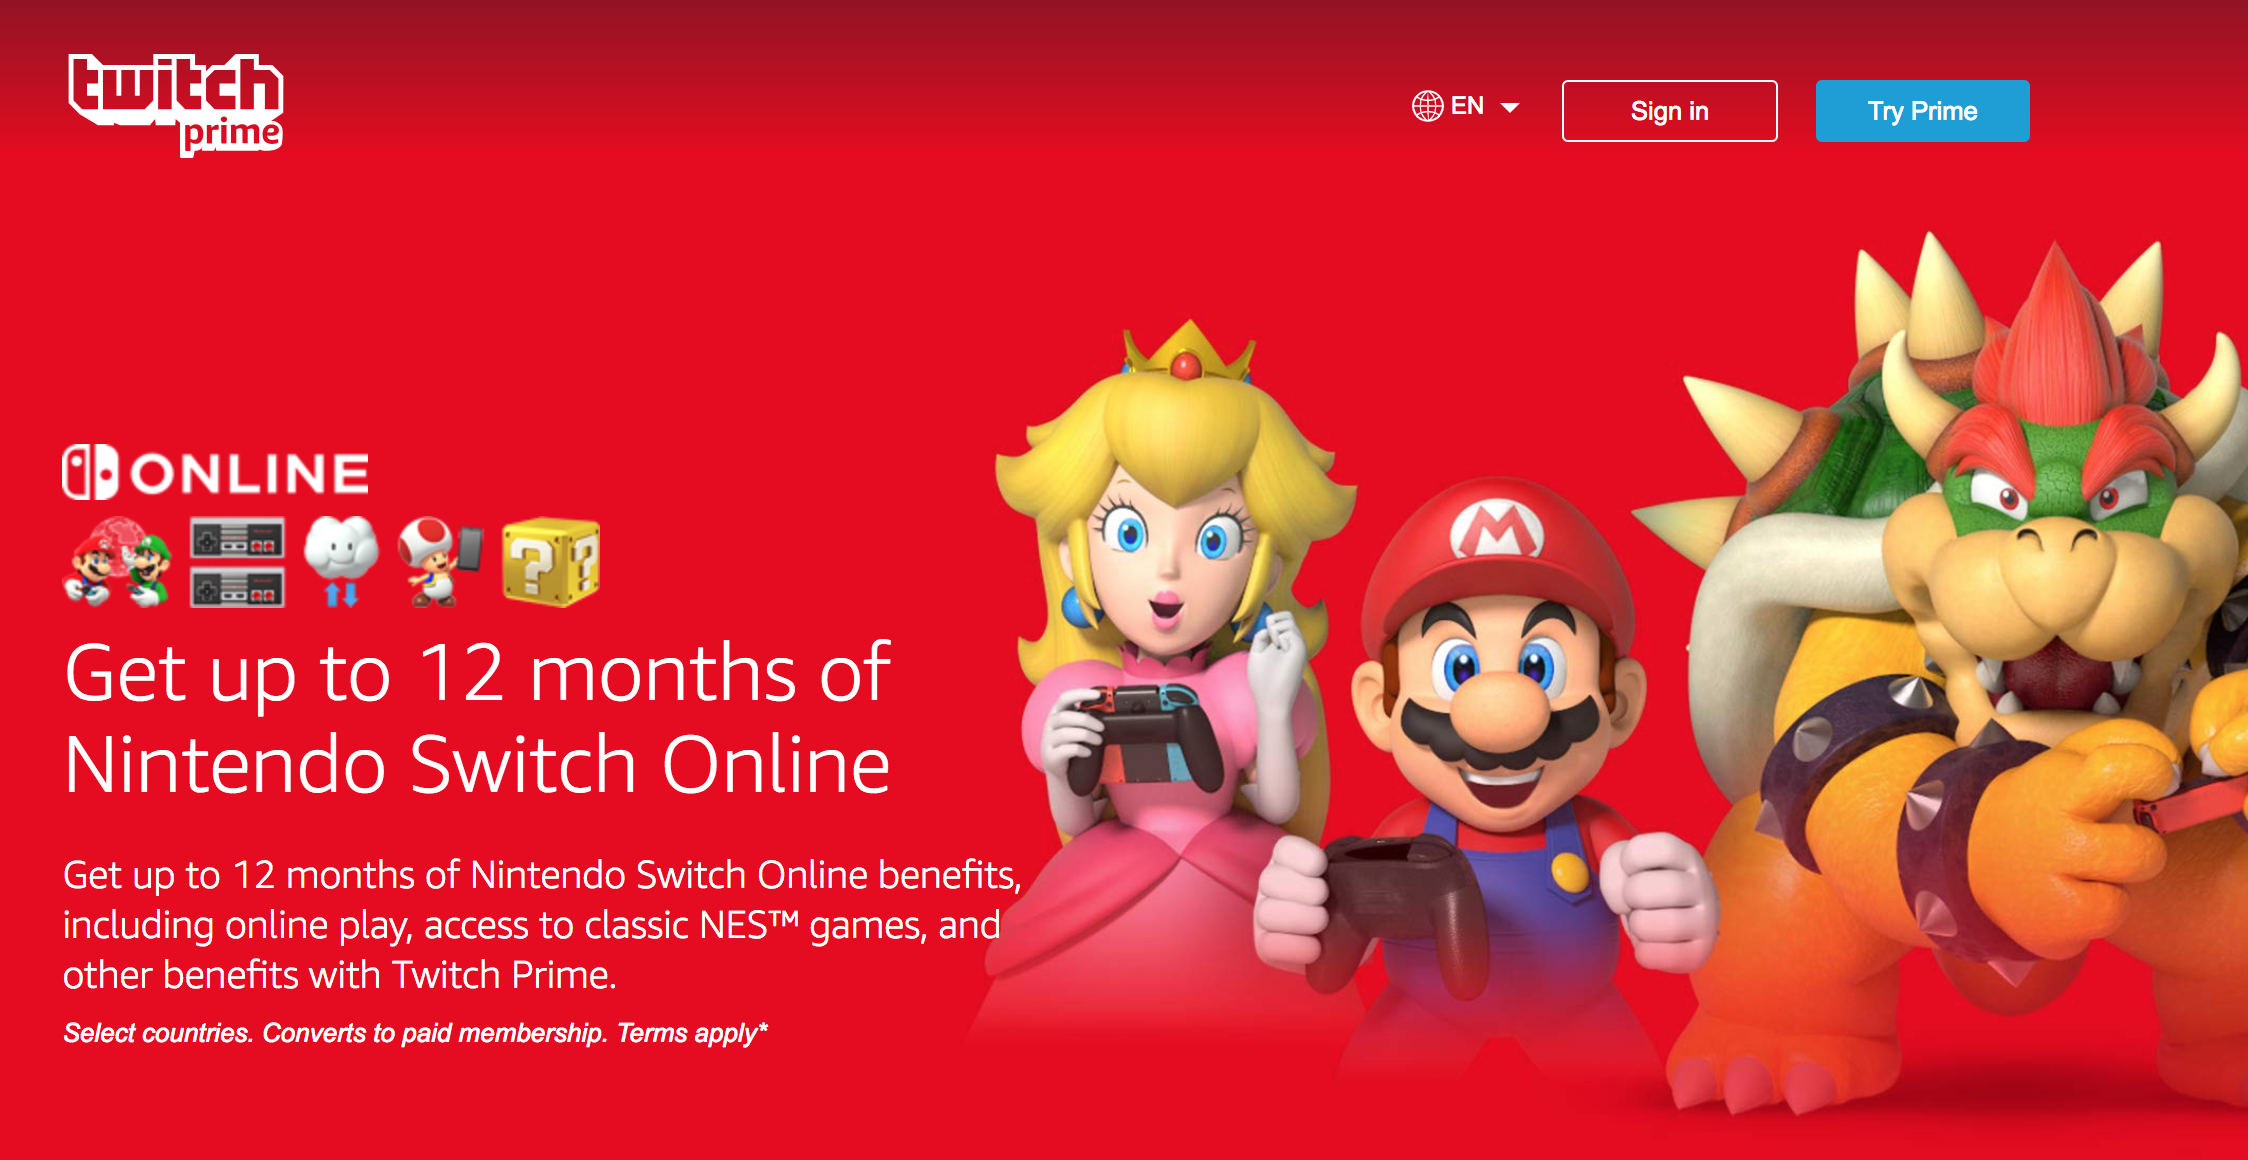 Amazon Prime Members Can Get 12 Months Of Nintendo Switch Online For Free